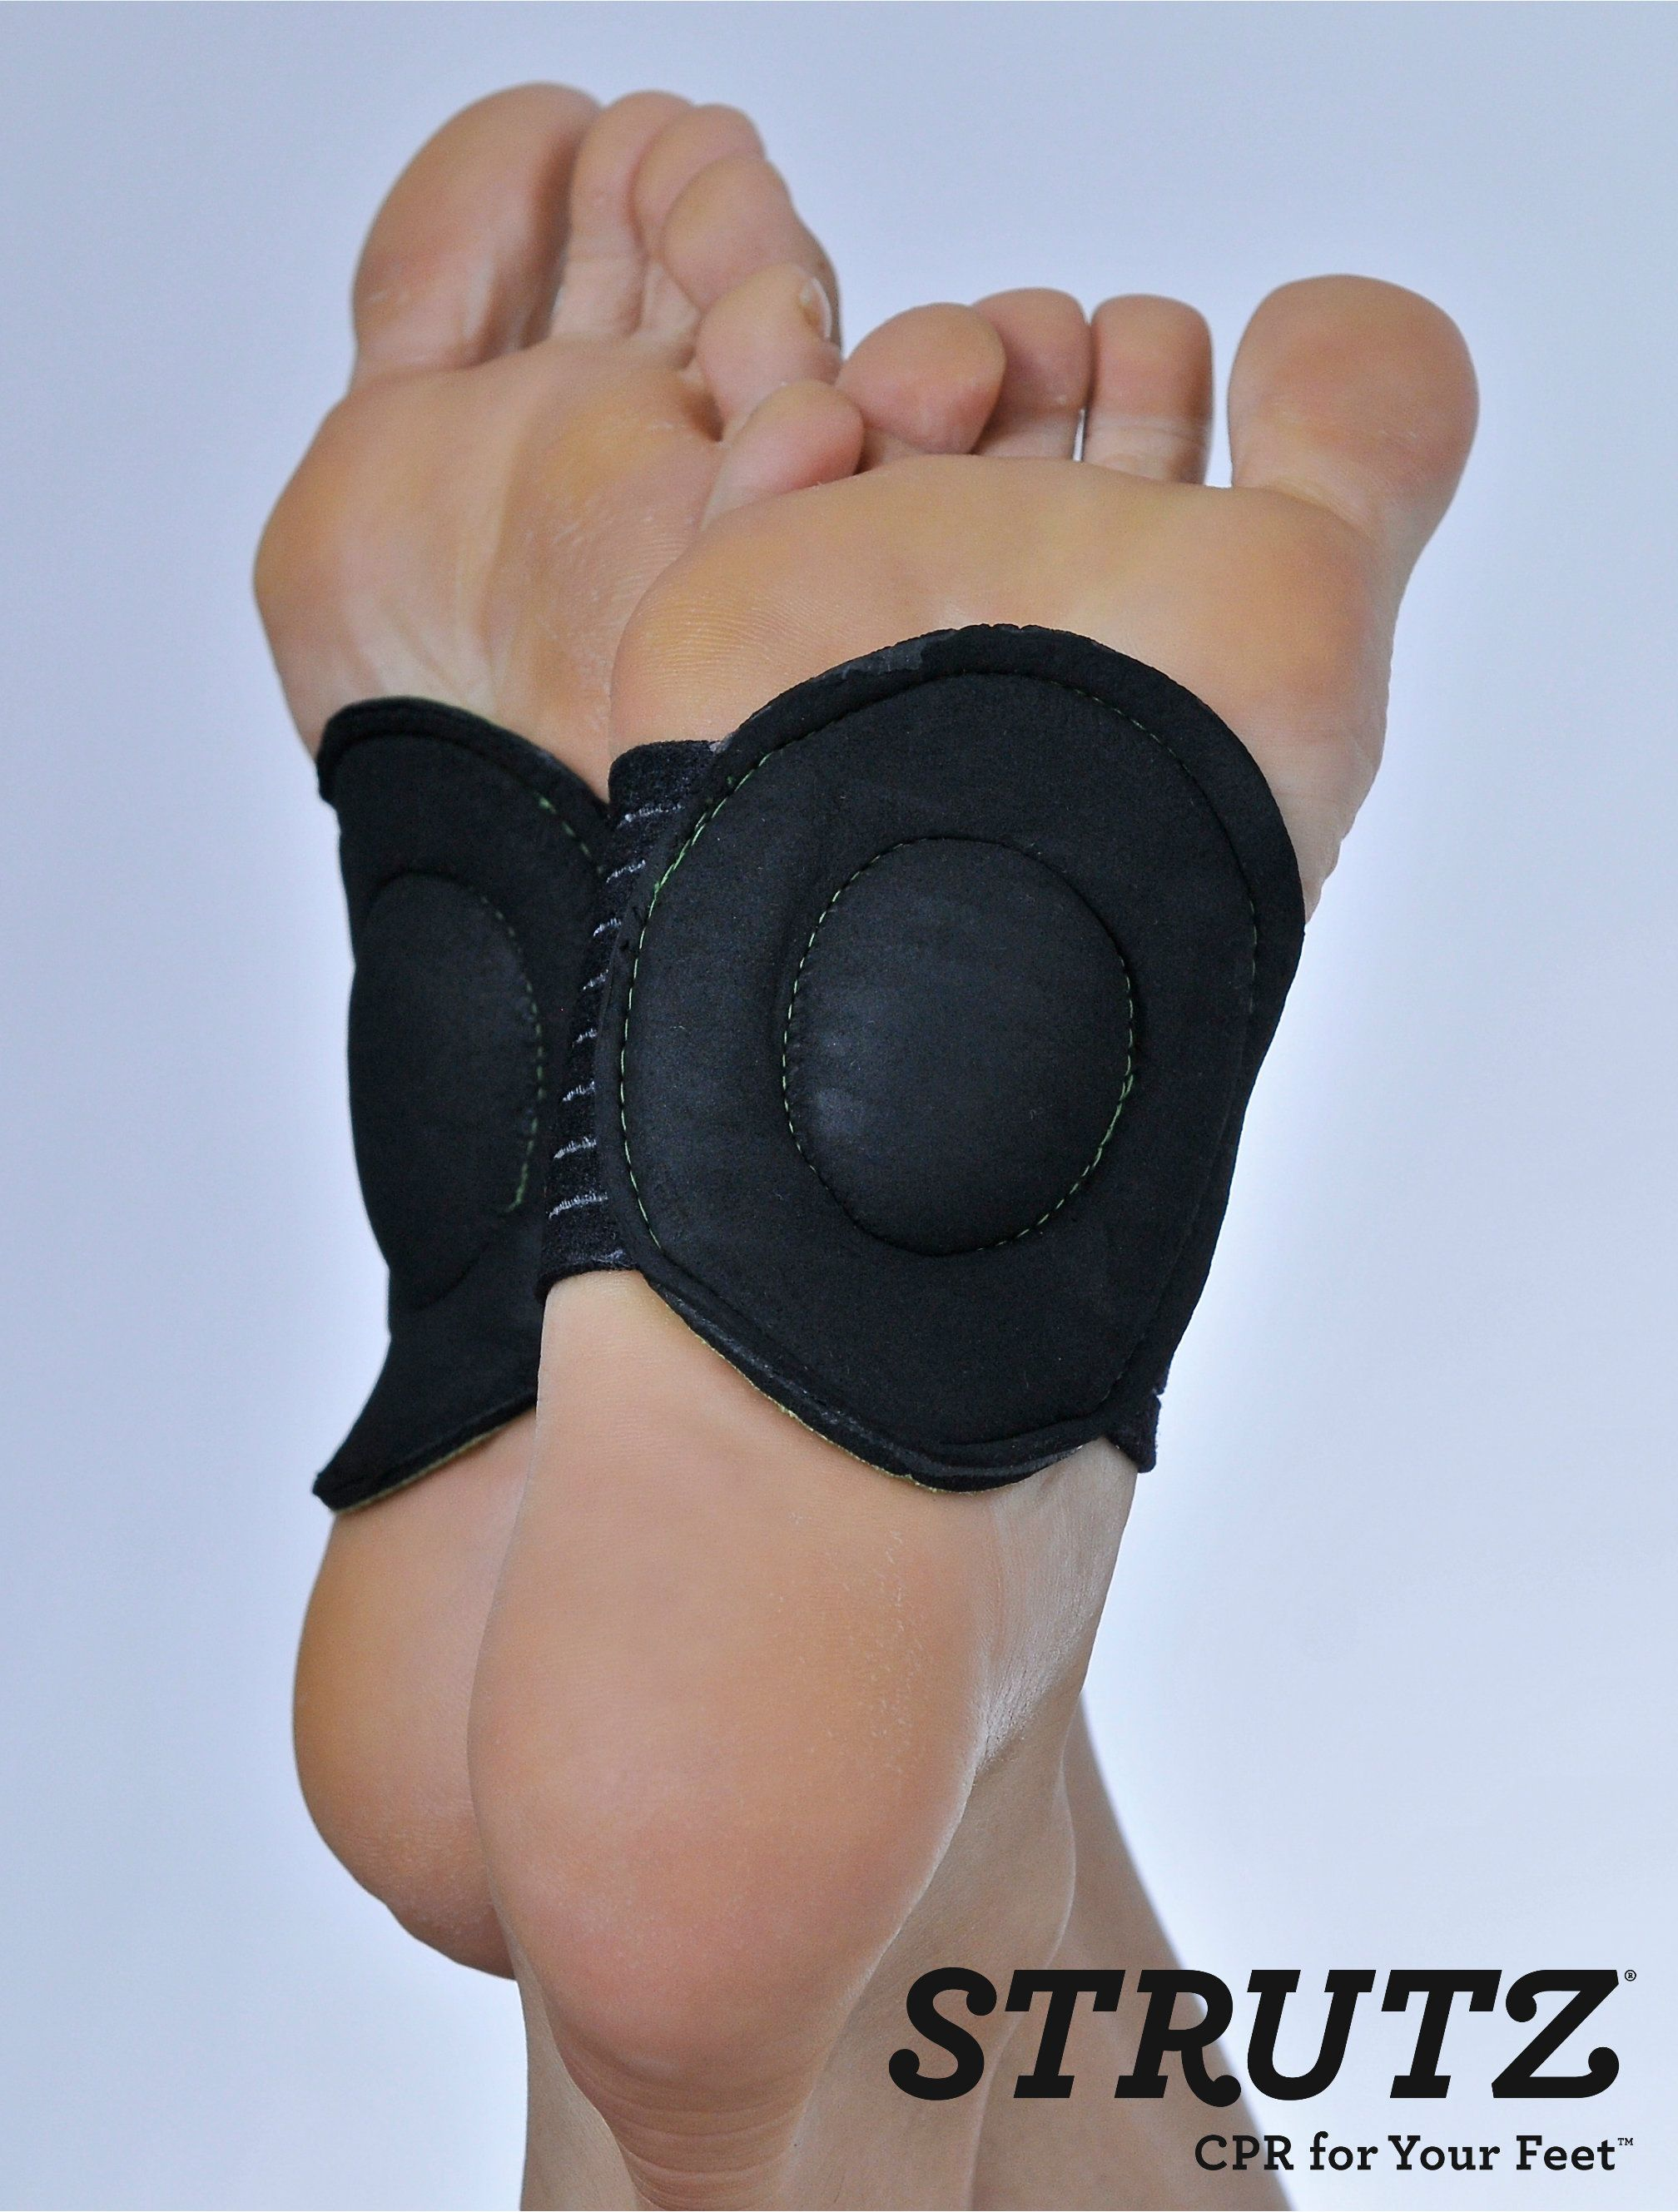 CPR for your feet - STRUTZ Arch Supports | Health ...